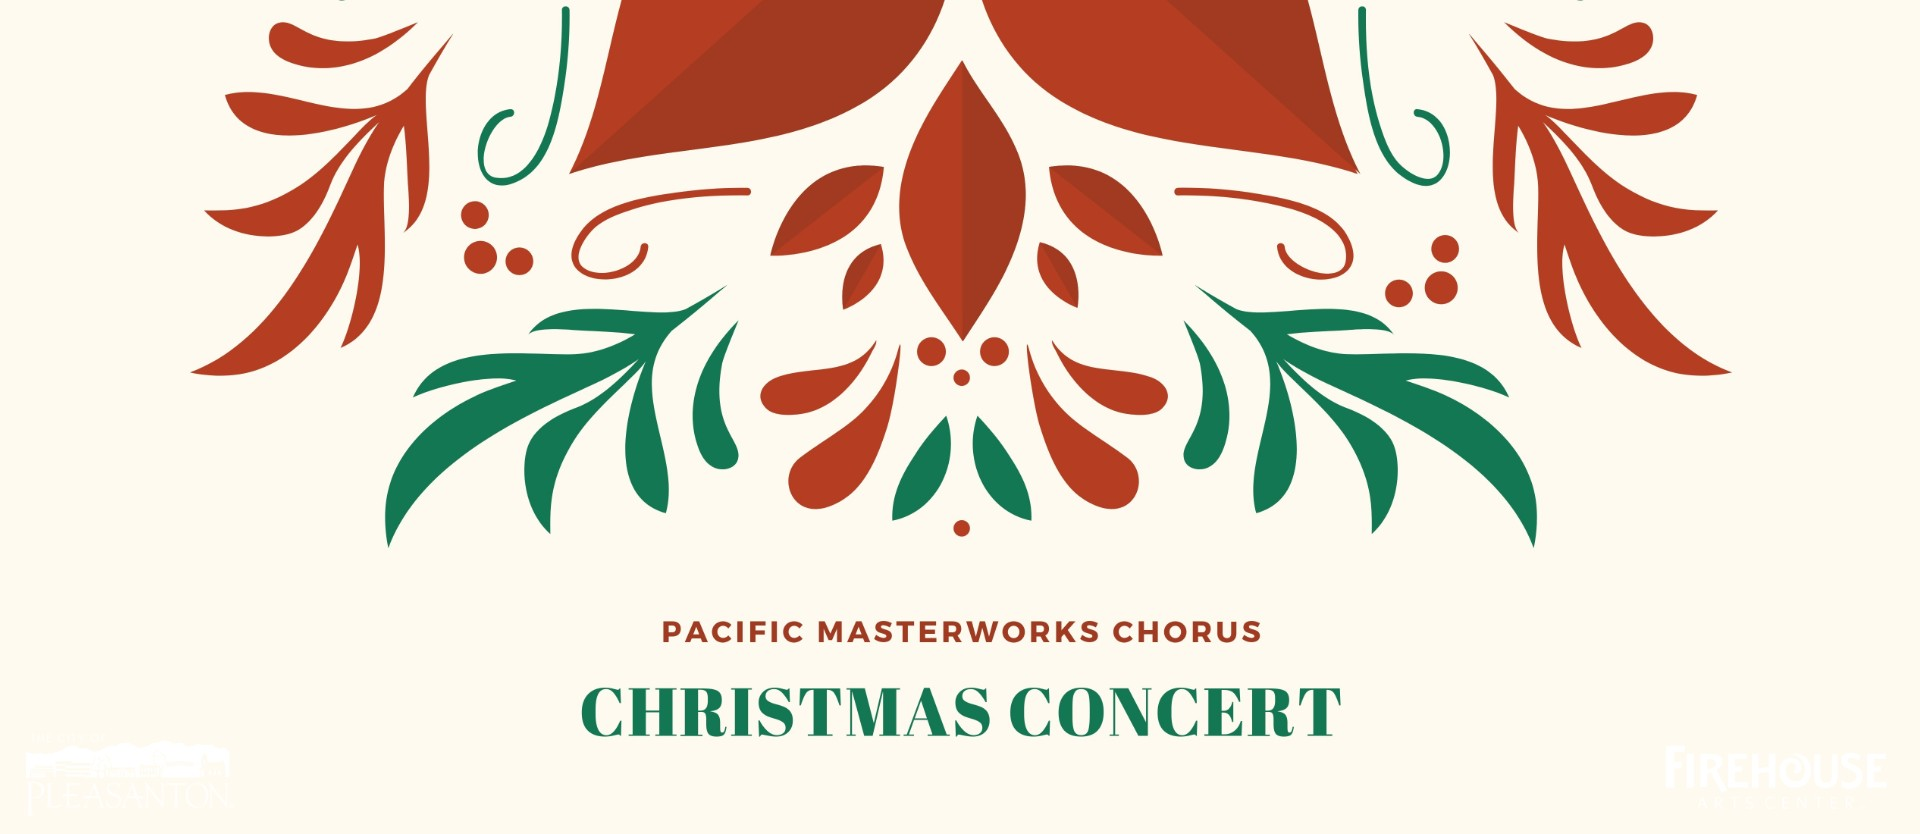 Pacific Masterworks Chorus Christmas Concert